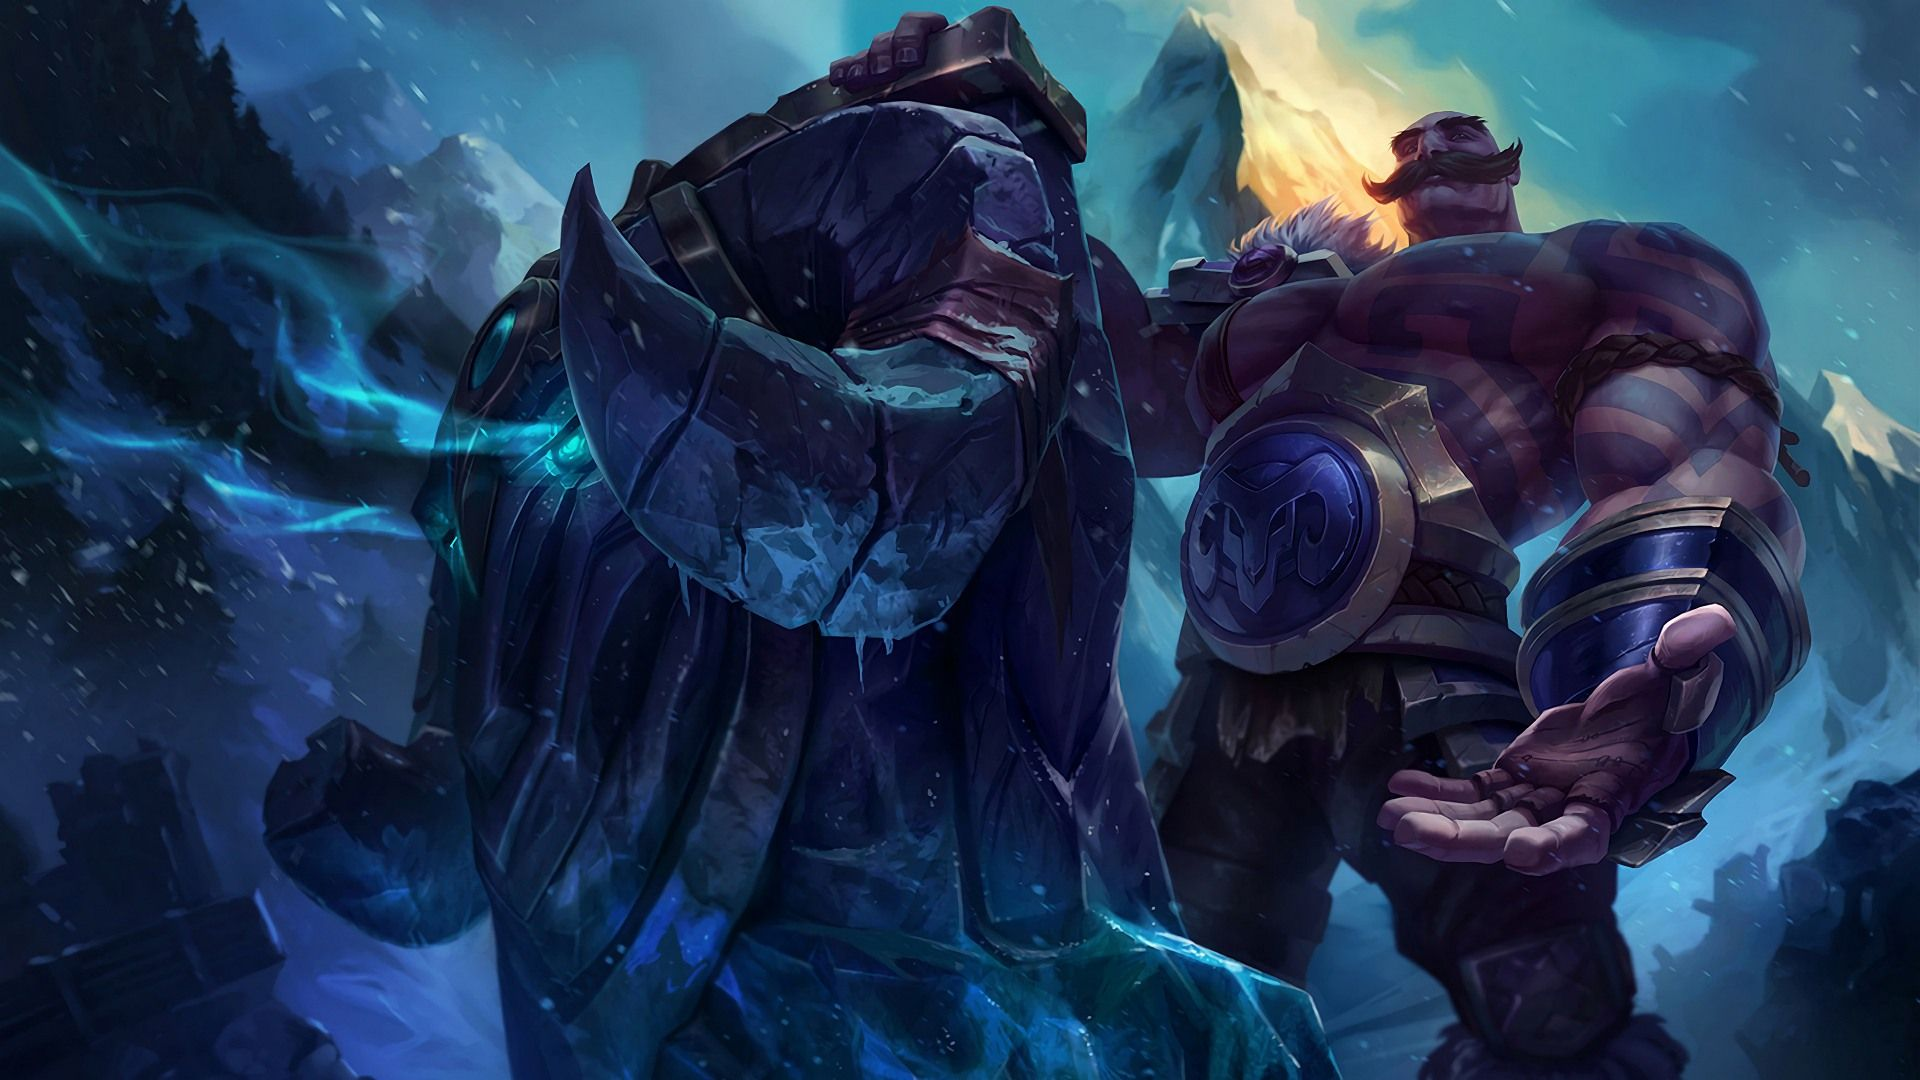 Download Wallpaper Classic Braum The Heart Of The Freljord Full Hd On Gamewalls League Of Legends Braum S Lol Champions